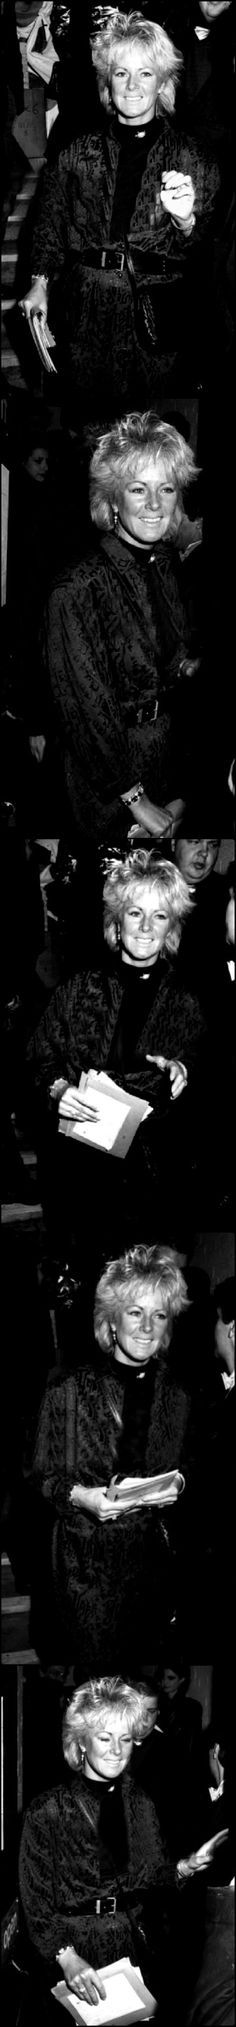 """On May 14, 1986 Frida attended the UK premiere of the musical """"Chess"""" in London."""